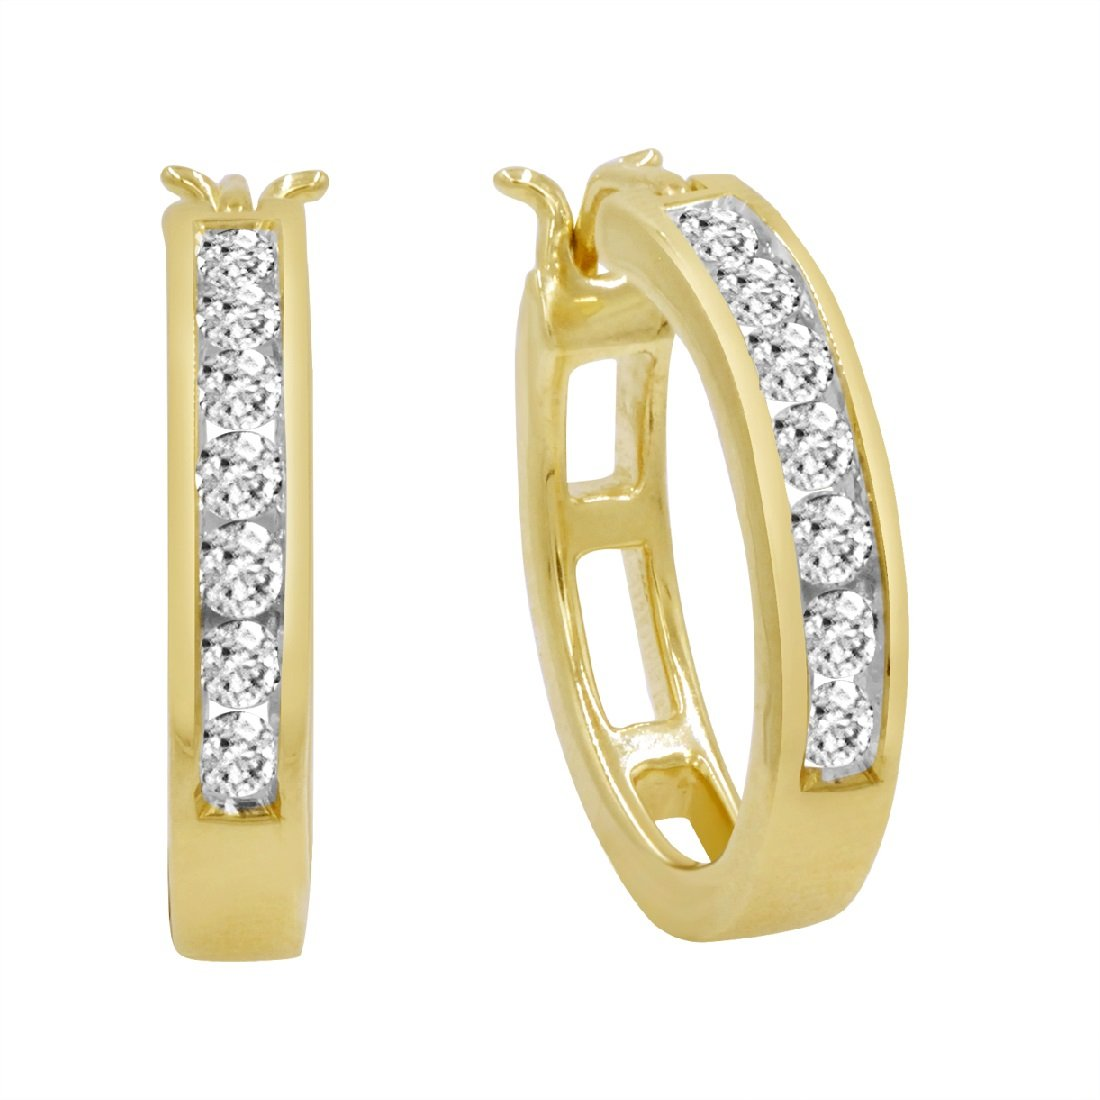 10K Yellow Gold Diamond Hoop Earrings (1/2ct tw) AGS Certified by Amanda Rose Collection (Image #1)